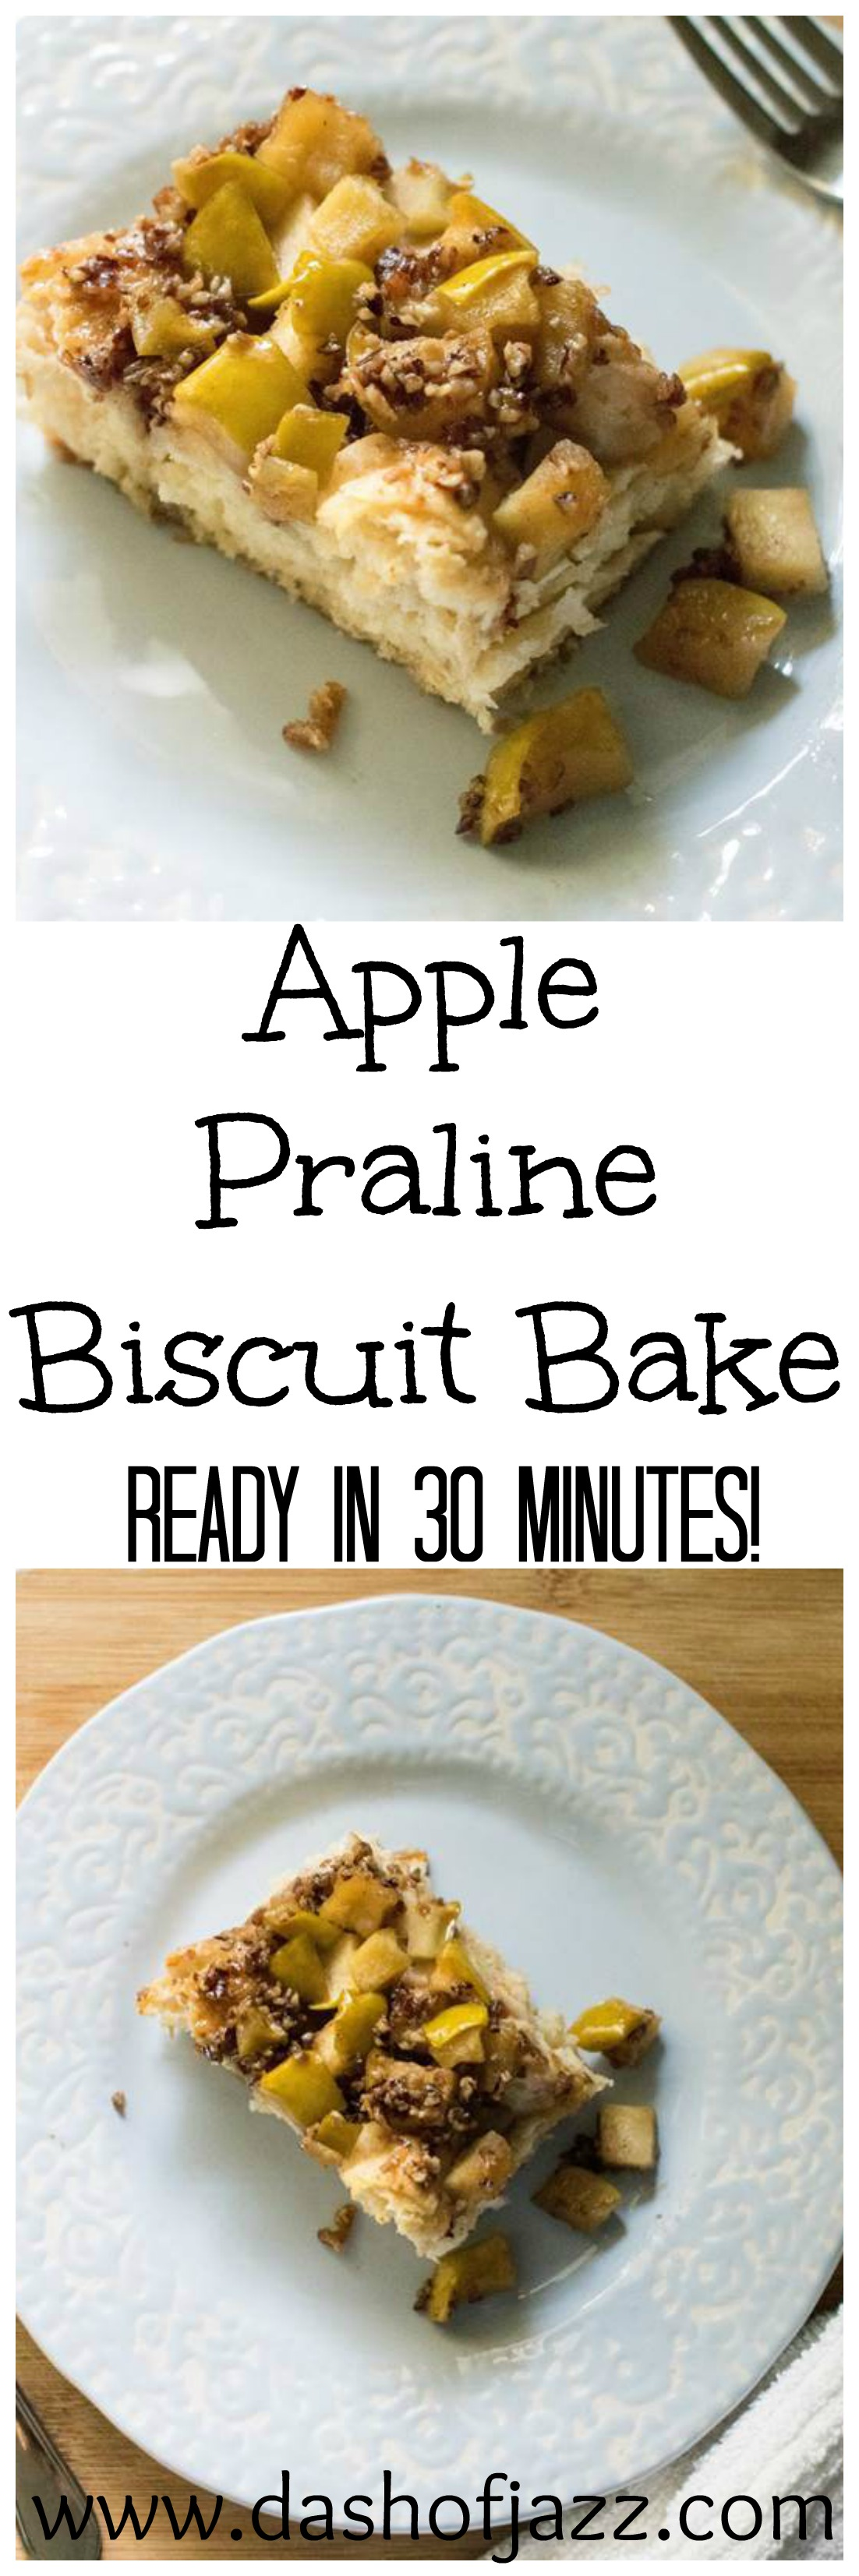 This Apple Praline Biscuit Bake is an easy, all-in-one brunch dish ready in about 30 minutes! It's simple, sweet, and definitely Southern. Recipe by Dash of Jazz